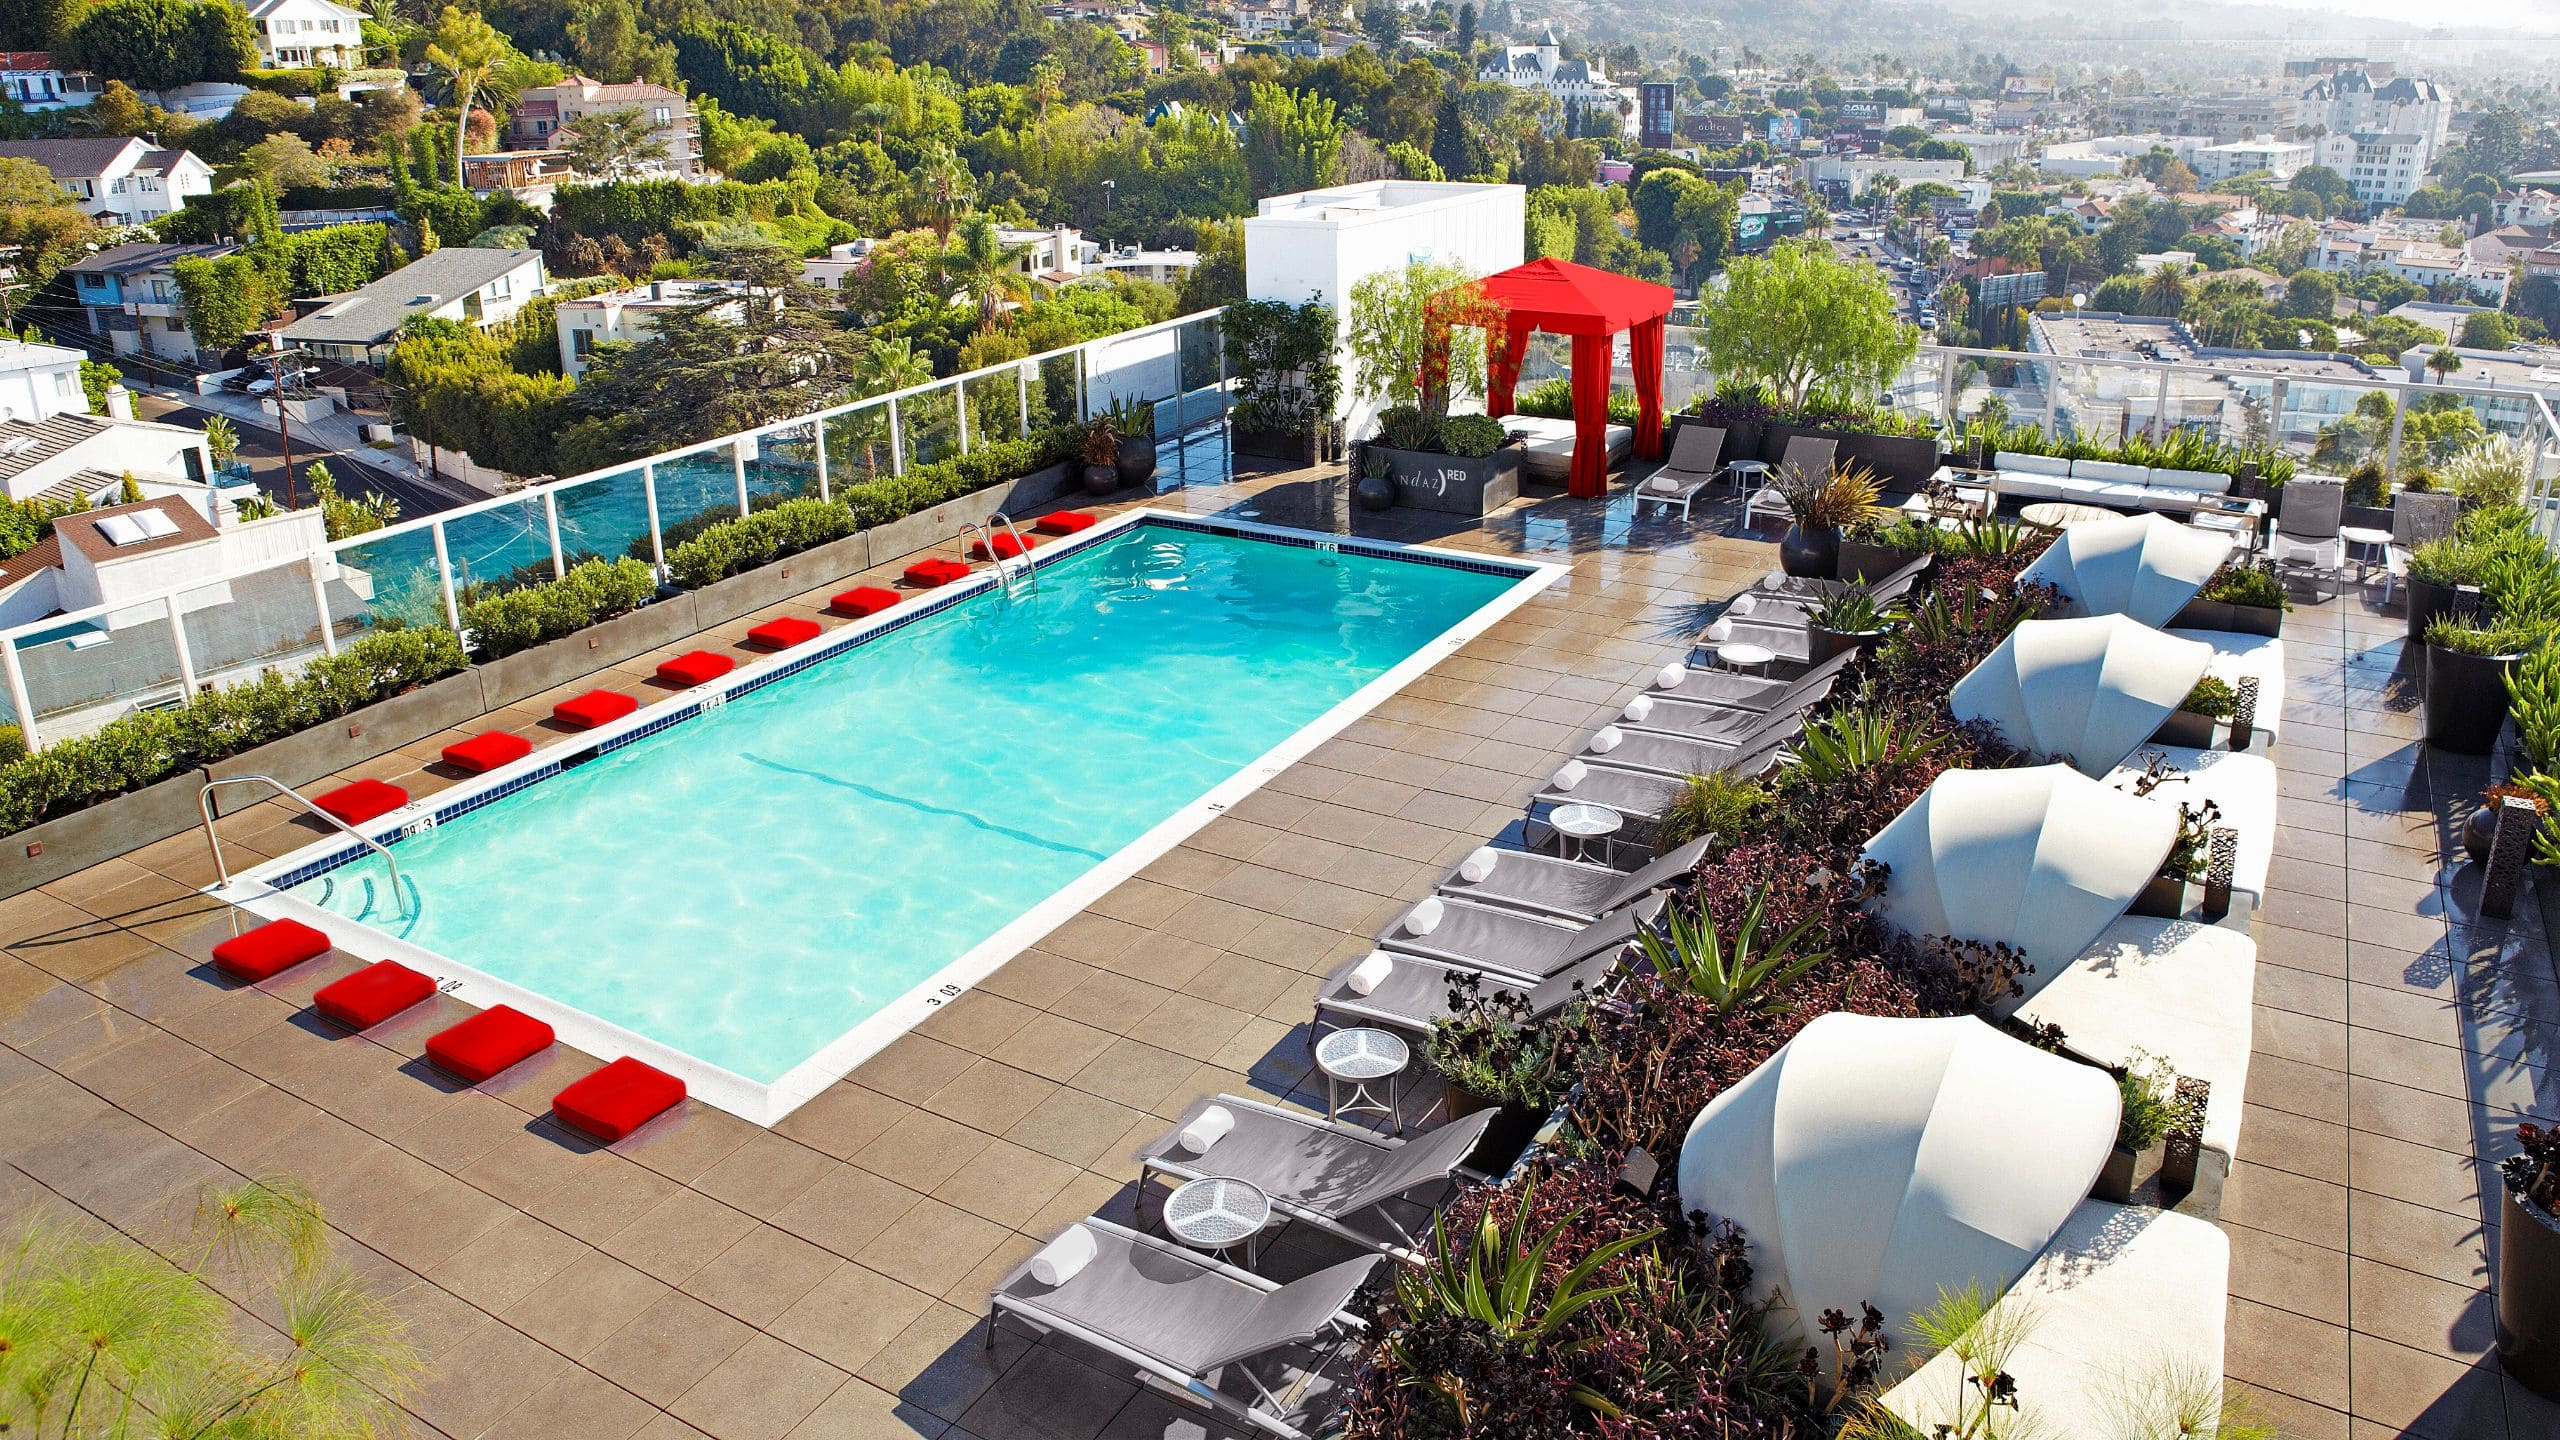 Los Angeles Hotel Near Sunset Strip Andaz West Hollywood